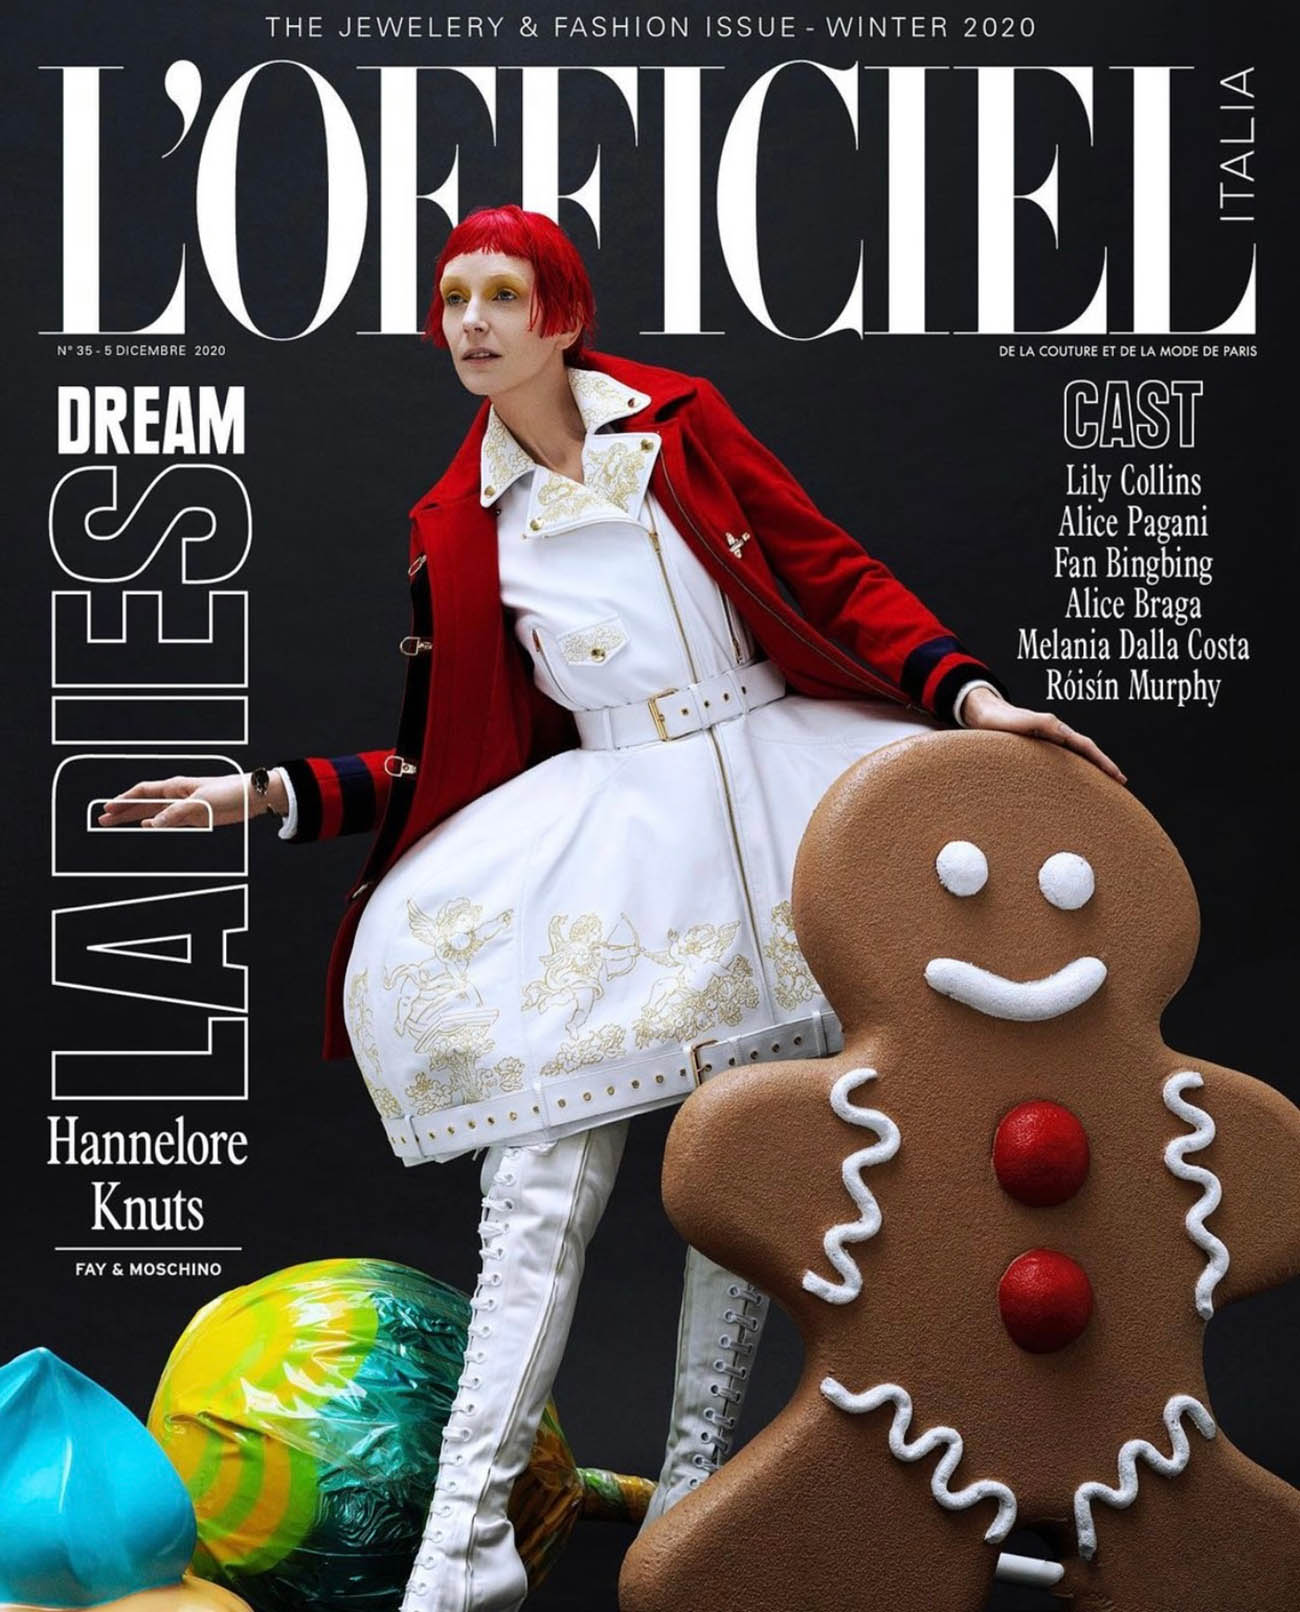 Hannelore Knuts covers L'Officiel Italia Issue 35 by Domen & Van de Velde